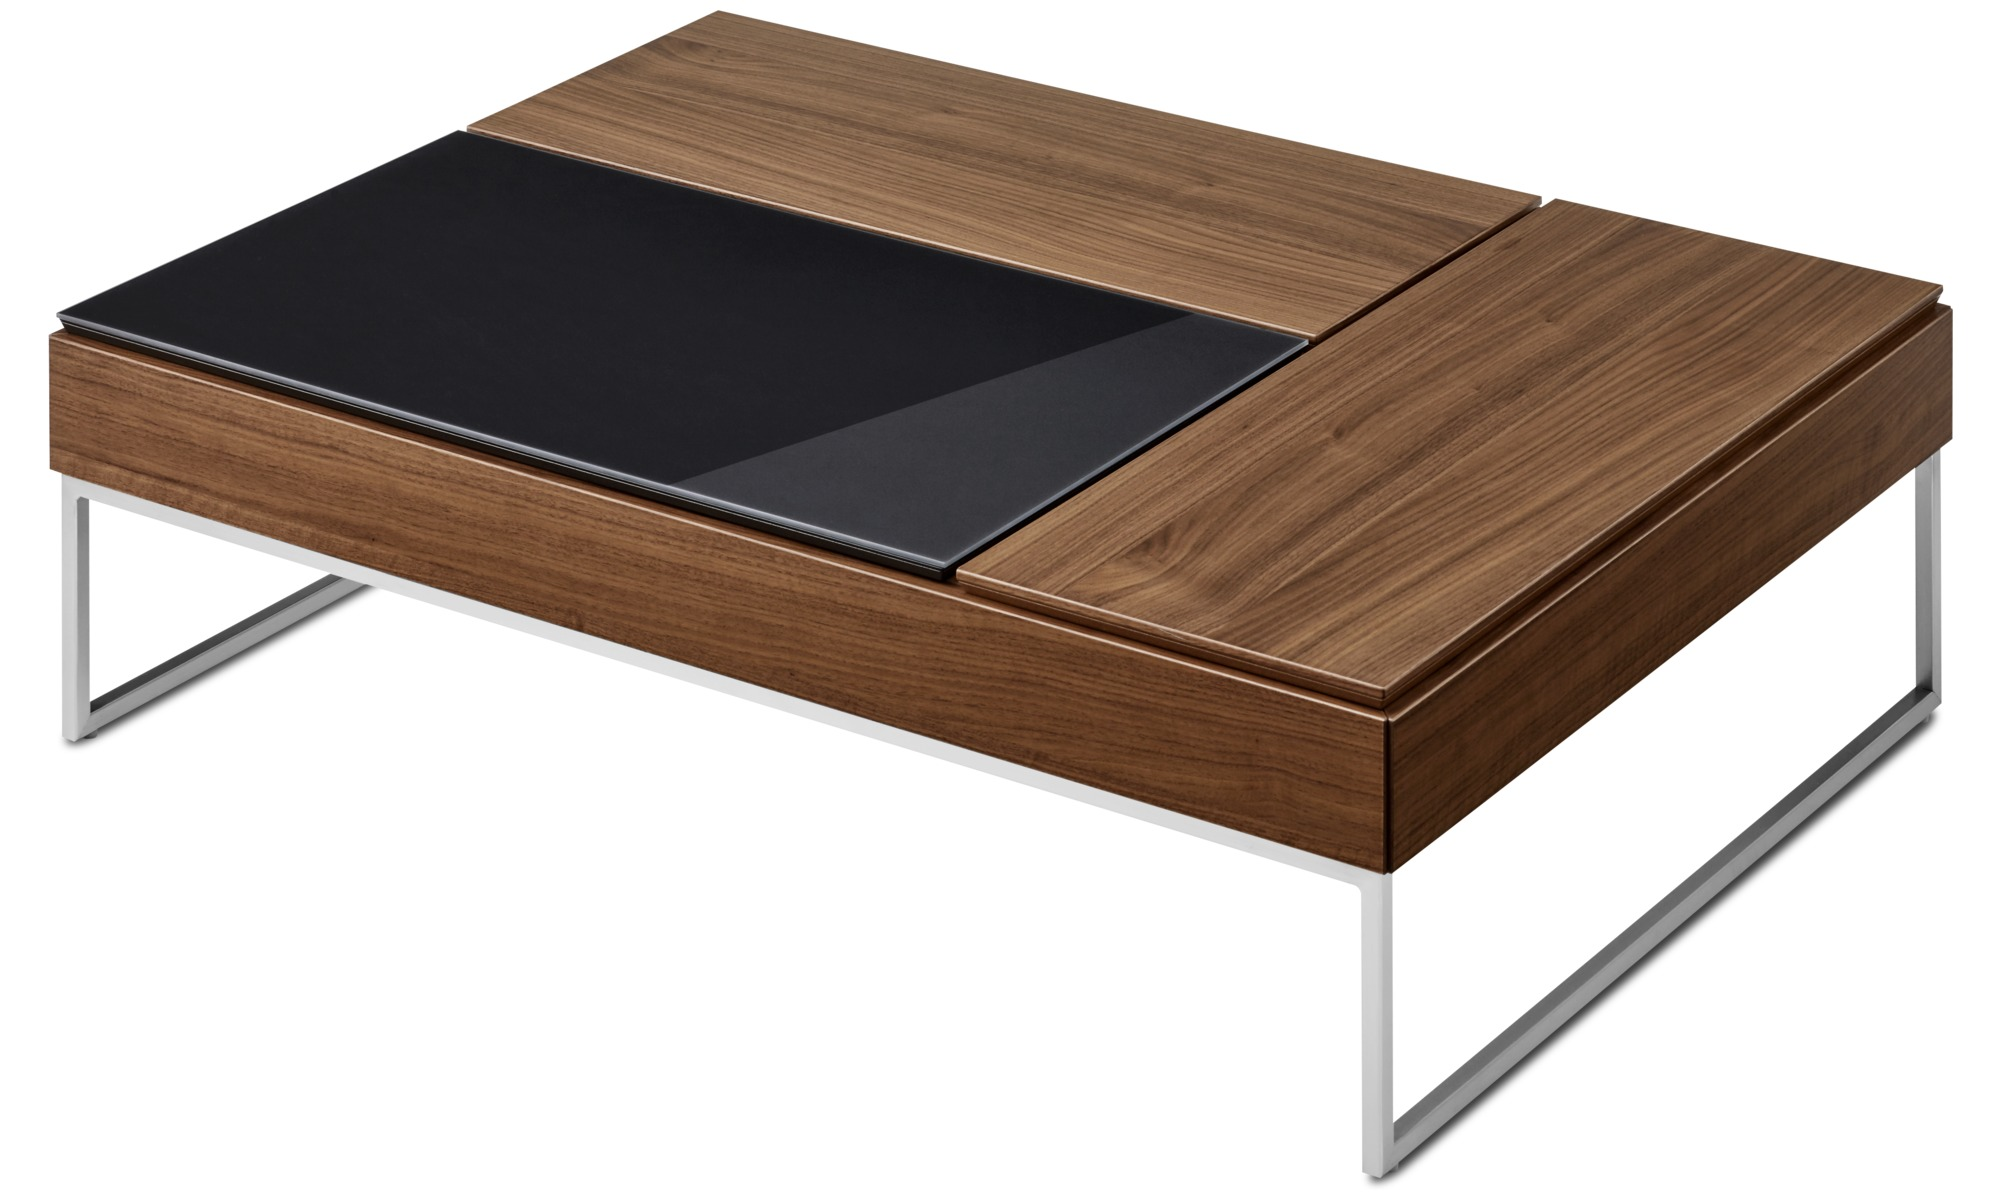 Boconcept Couchtisch Chiva Coffee Tables Chiva Functional Coffee Table With Storage